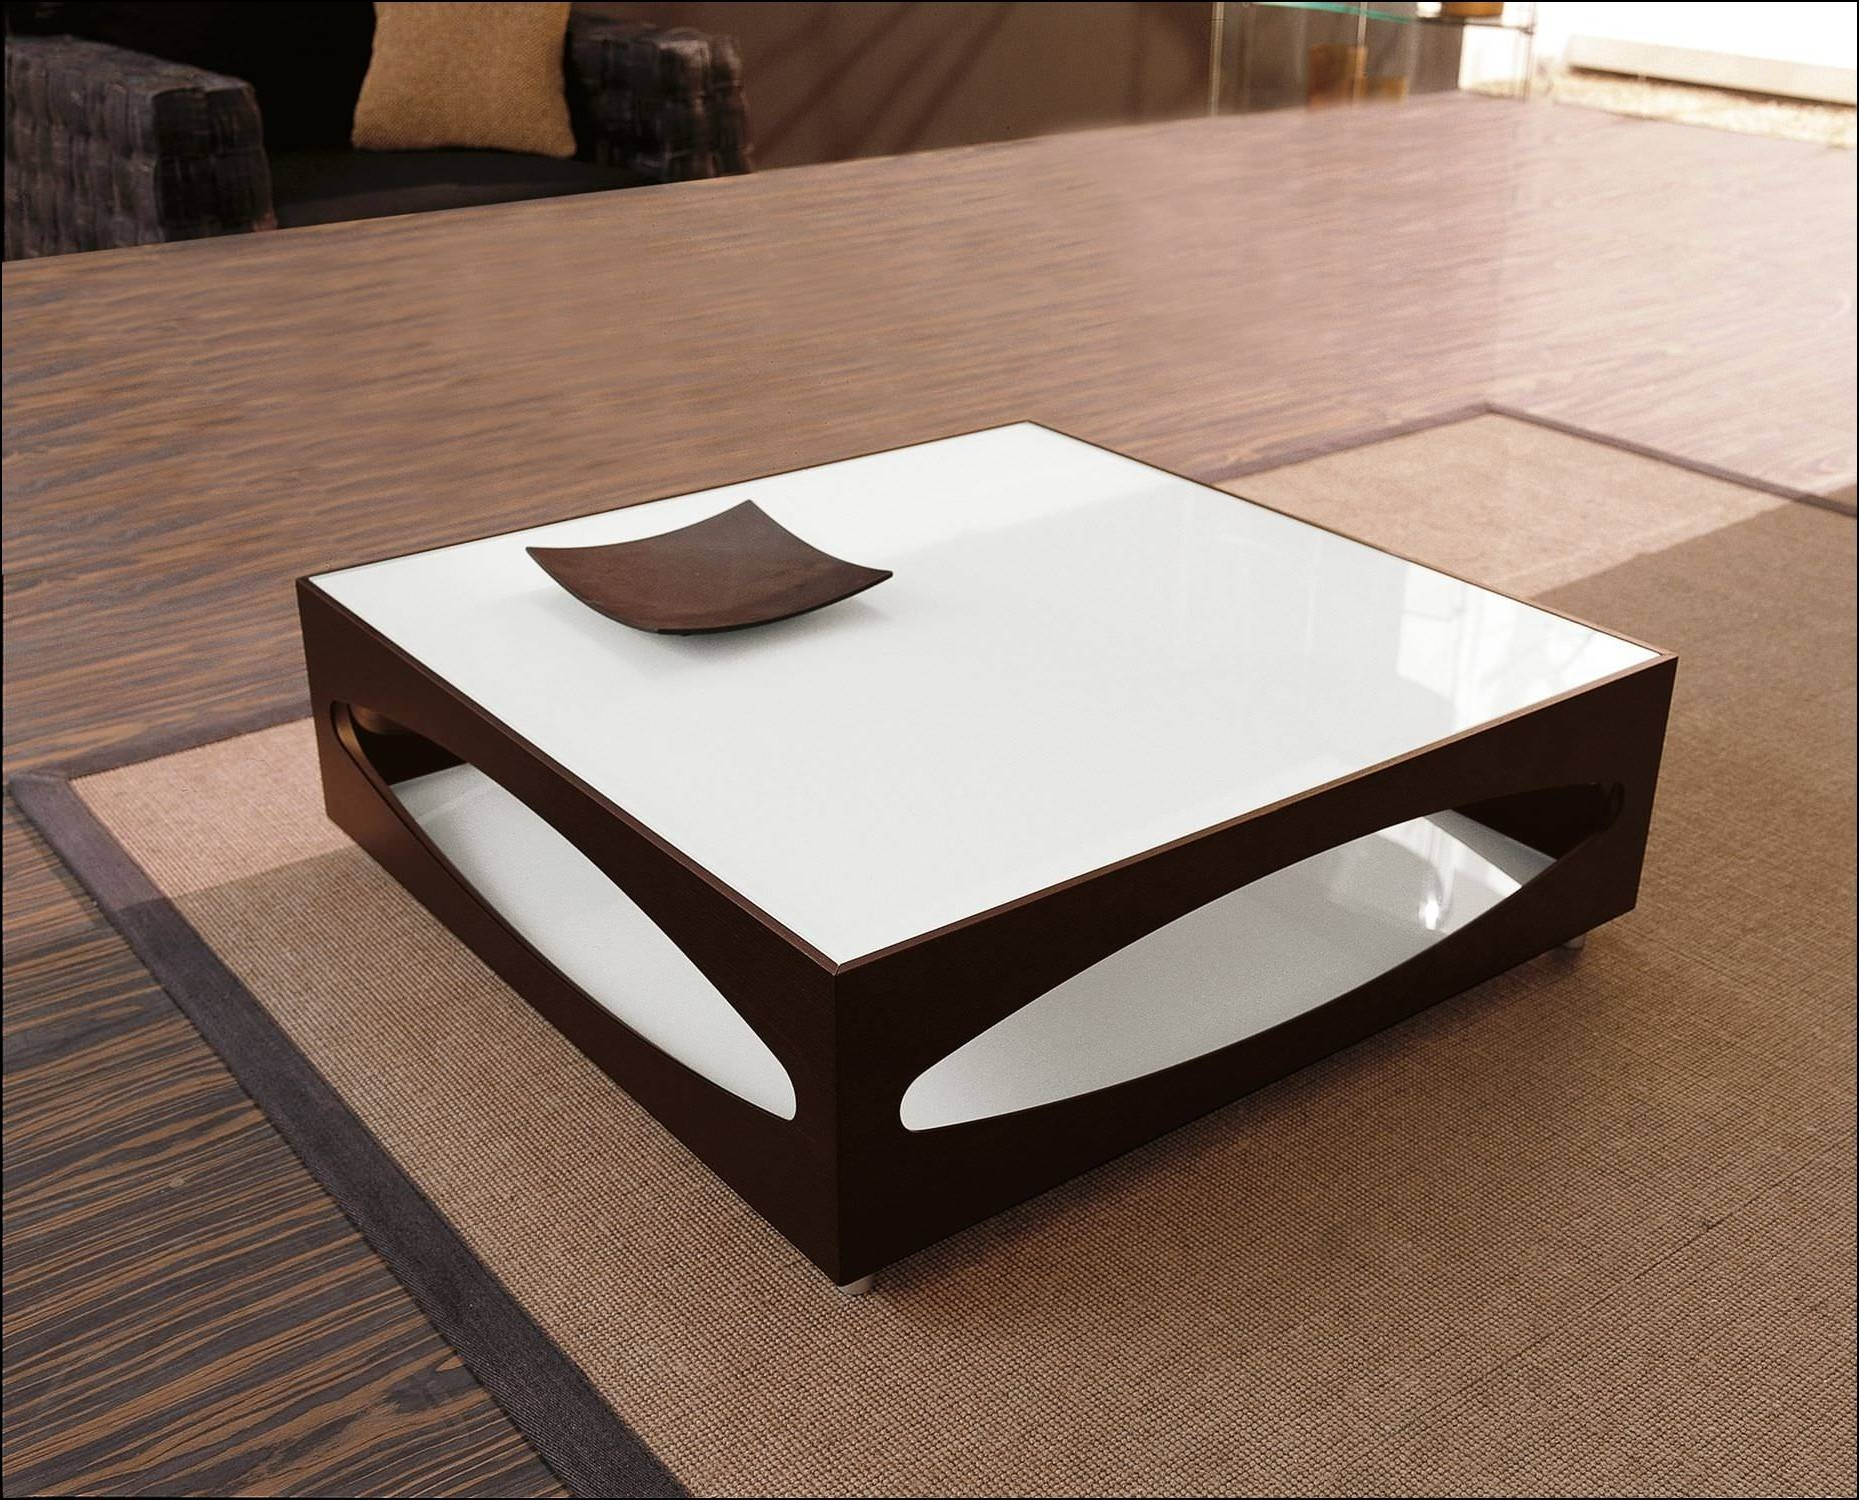 Macy's Monterey Coffee Table | Best Room Design with Monterey Coffee Tables (Image 14 of 30)